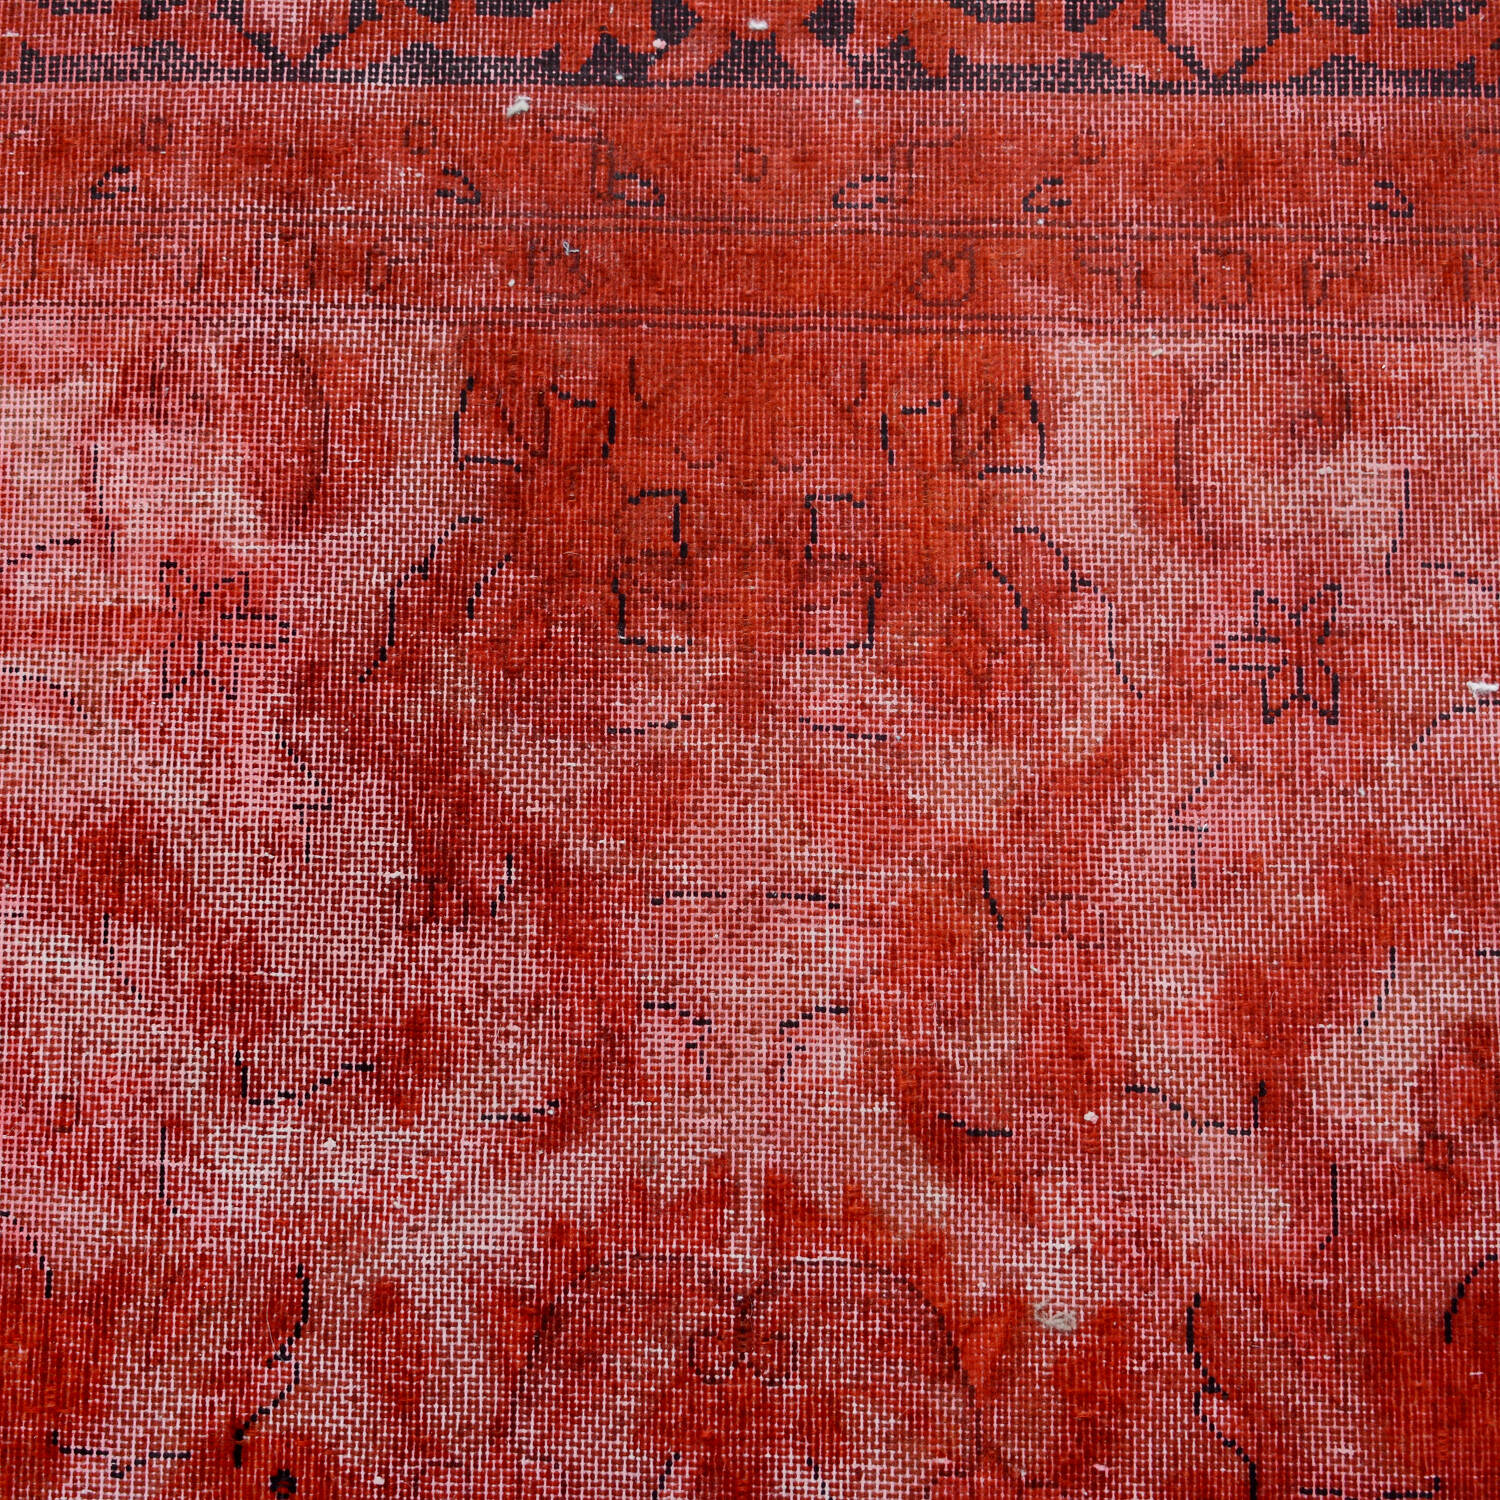 Antique Over Dyed Floral Kerman Persian Area Rug 7x9 image 4